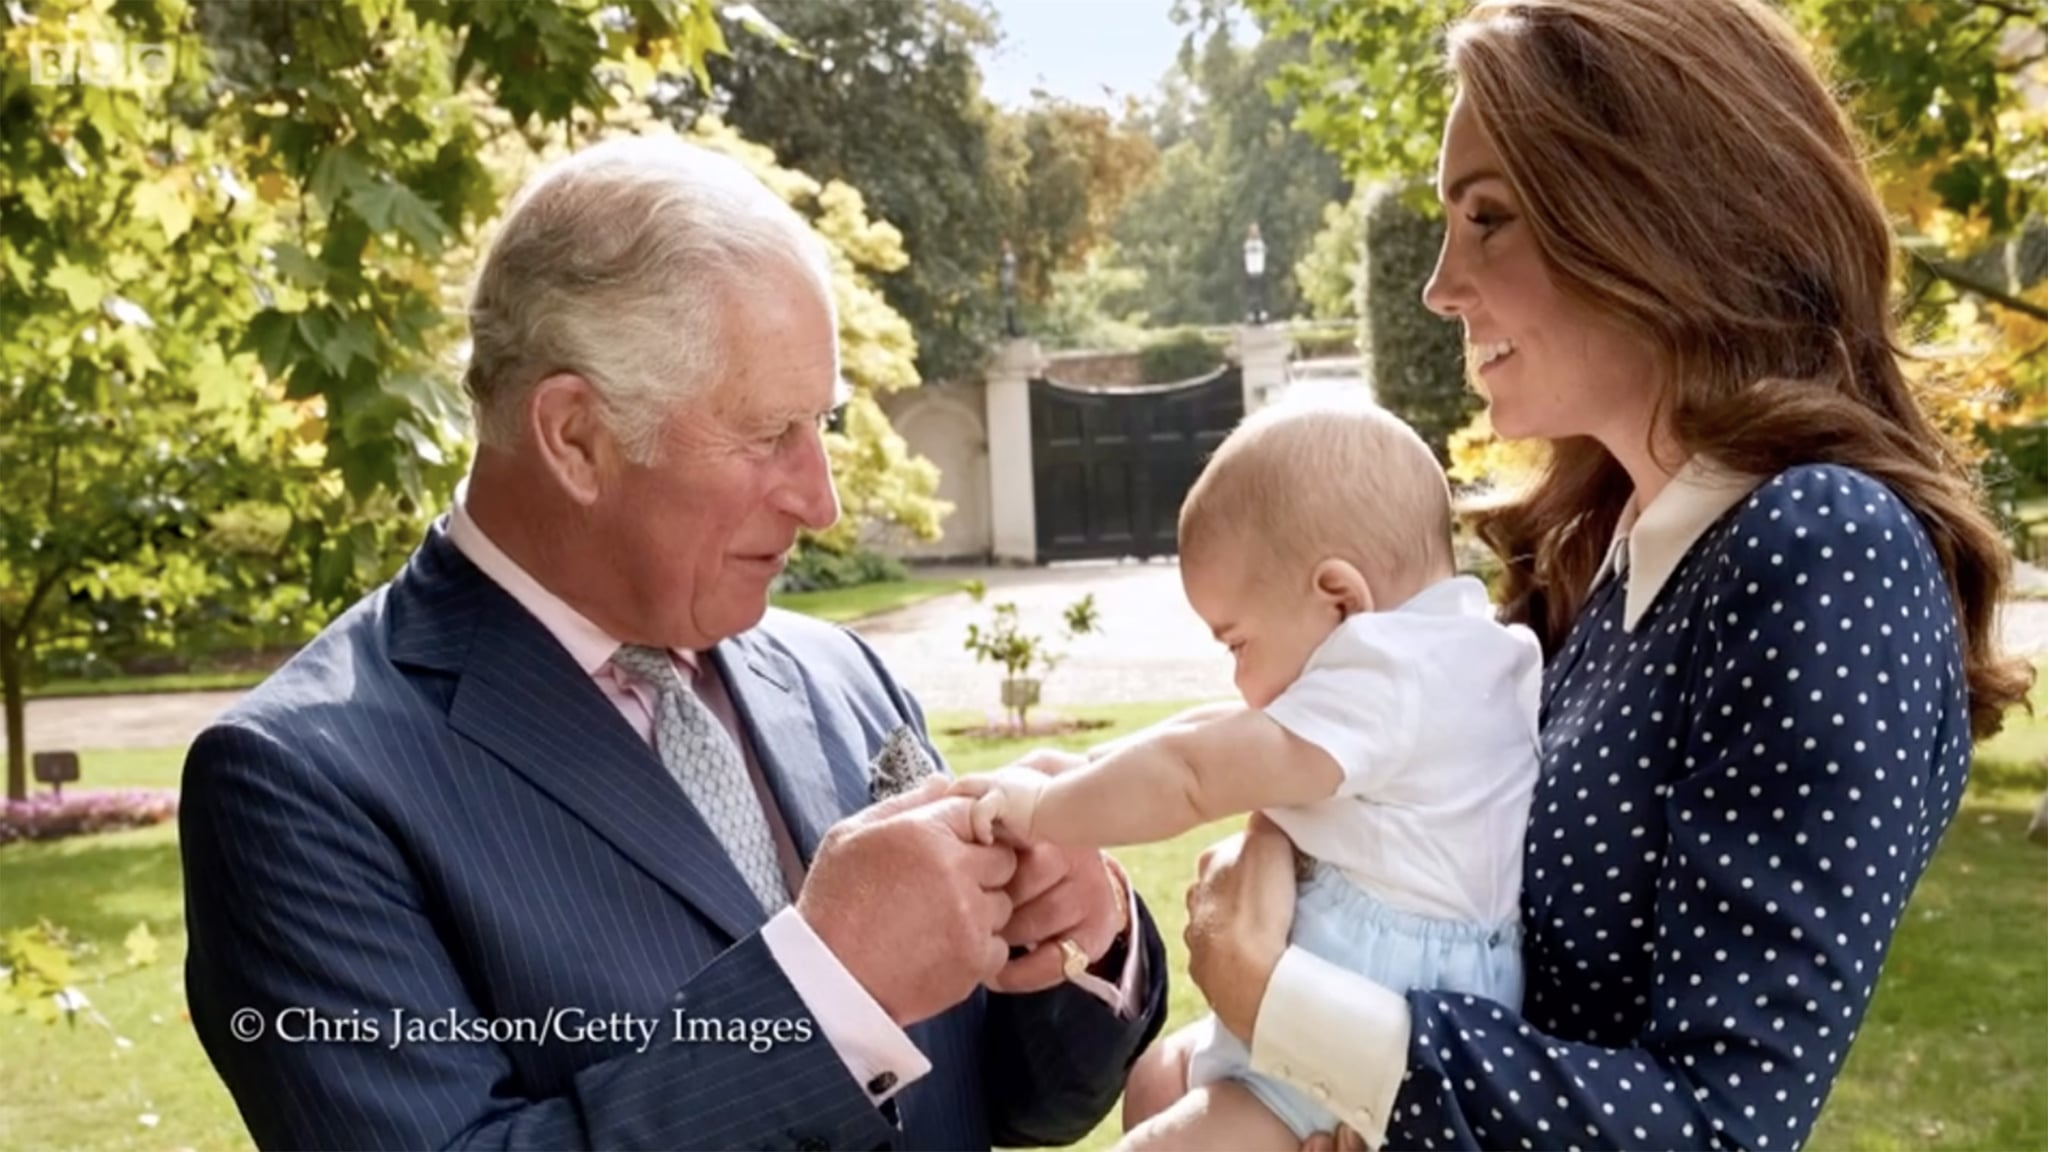 Prince Charles, Prince Louis, Catherine Duchess of CambridgeCredit: Chris Jackson/Getty Images